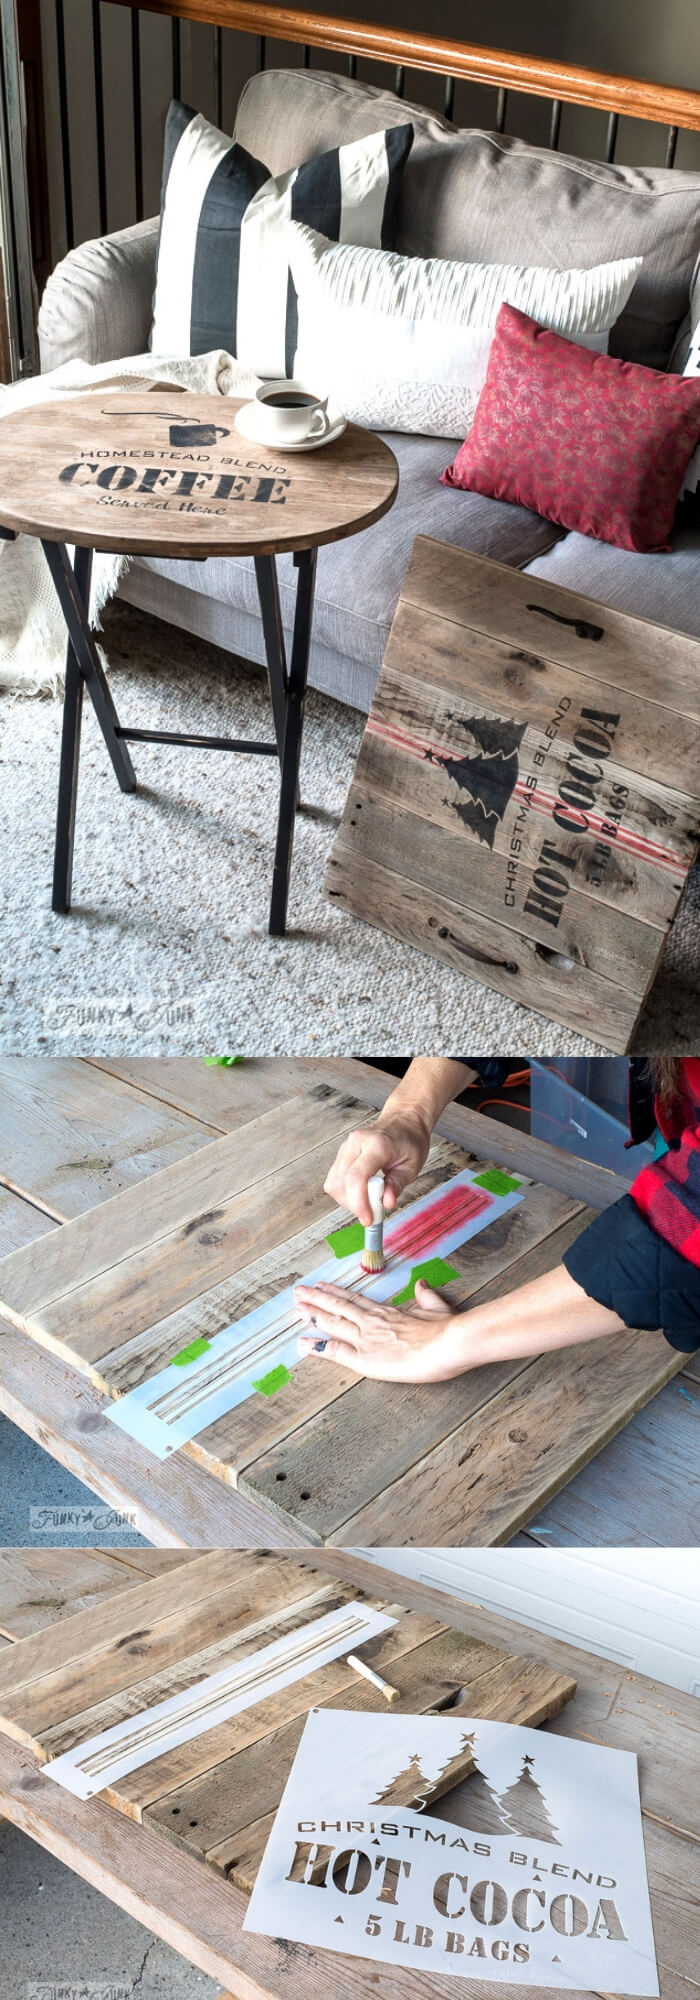 Wooden Coffee Table with Hot cocoaStencil | Best Farmhouse Living Room Decor & Design Ideas